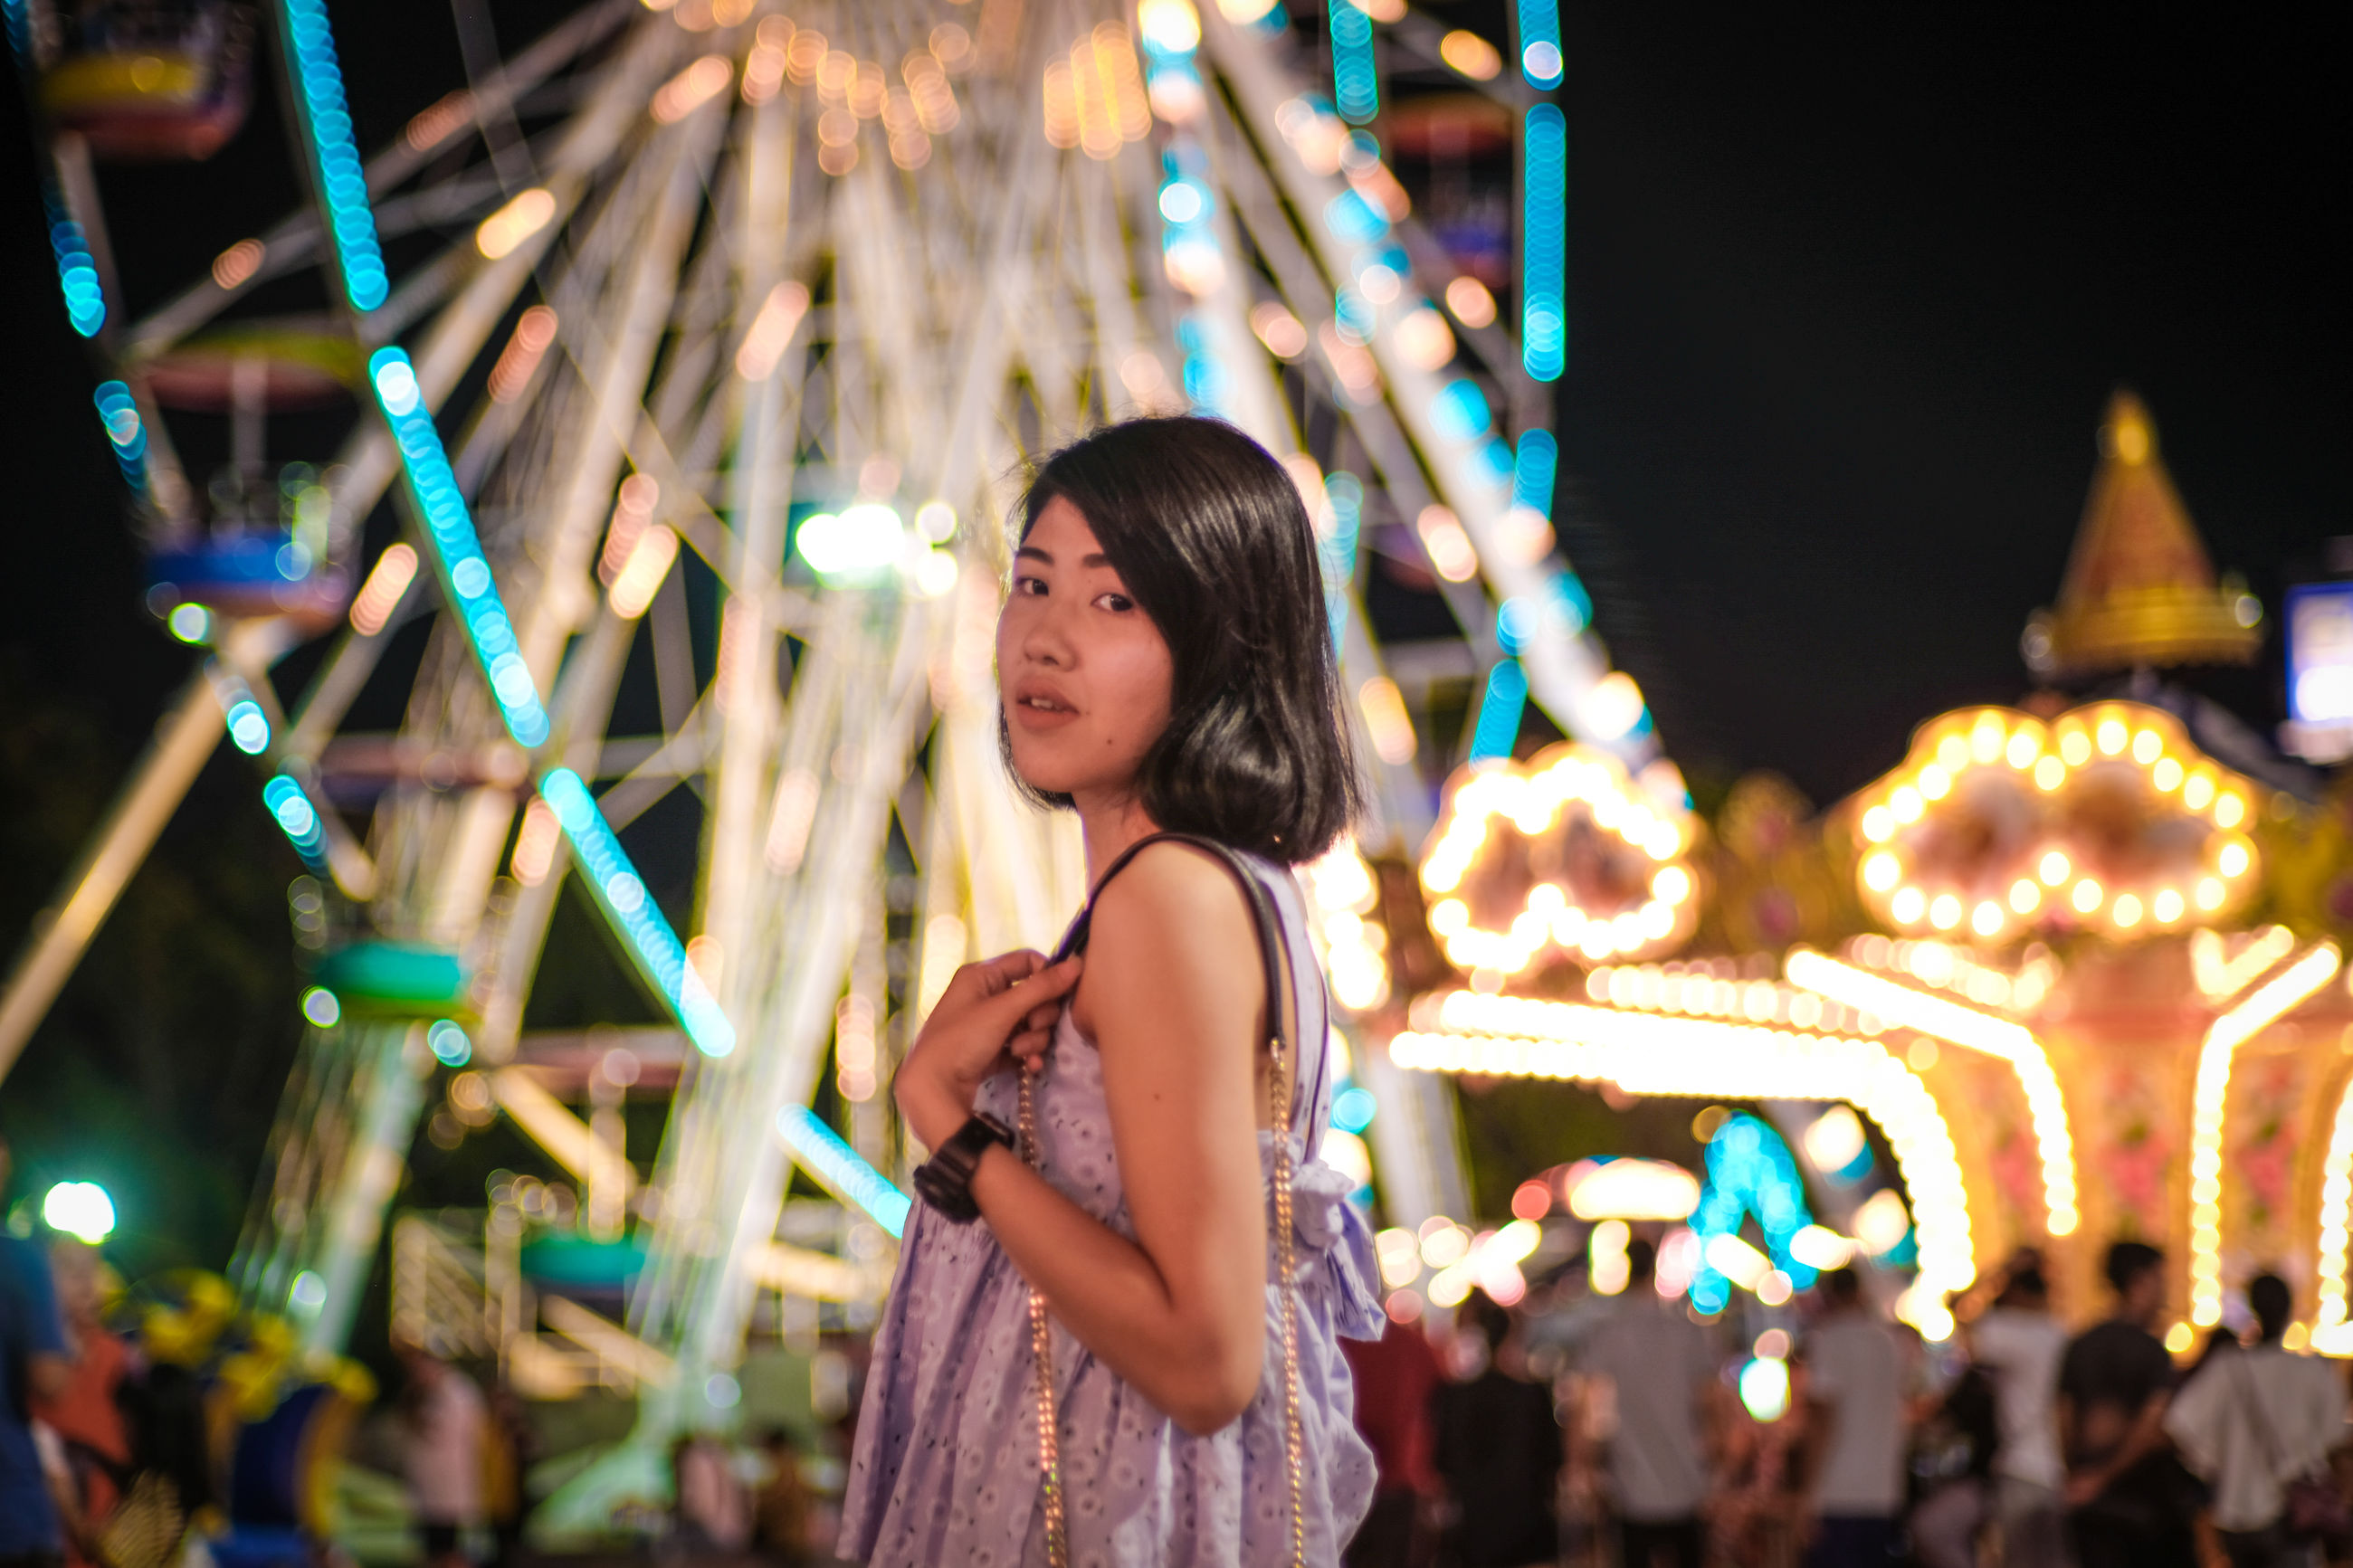 illuminated, night, real people, one person, women, leisure activity, lifestyles, focus on foreground, young women, incidental people, standing, young adult, adult, built structure, lighting equipment, architecture, casual clothing, amusement park ride, portrait, hairstyle, beautiful woman, light